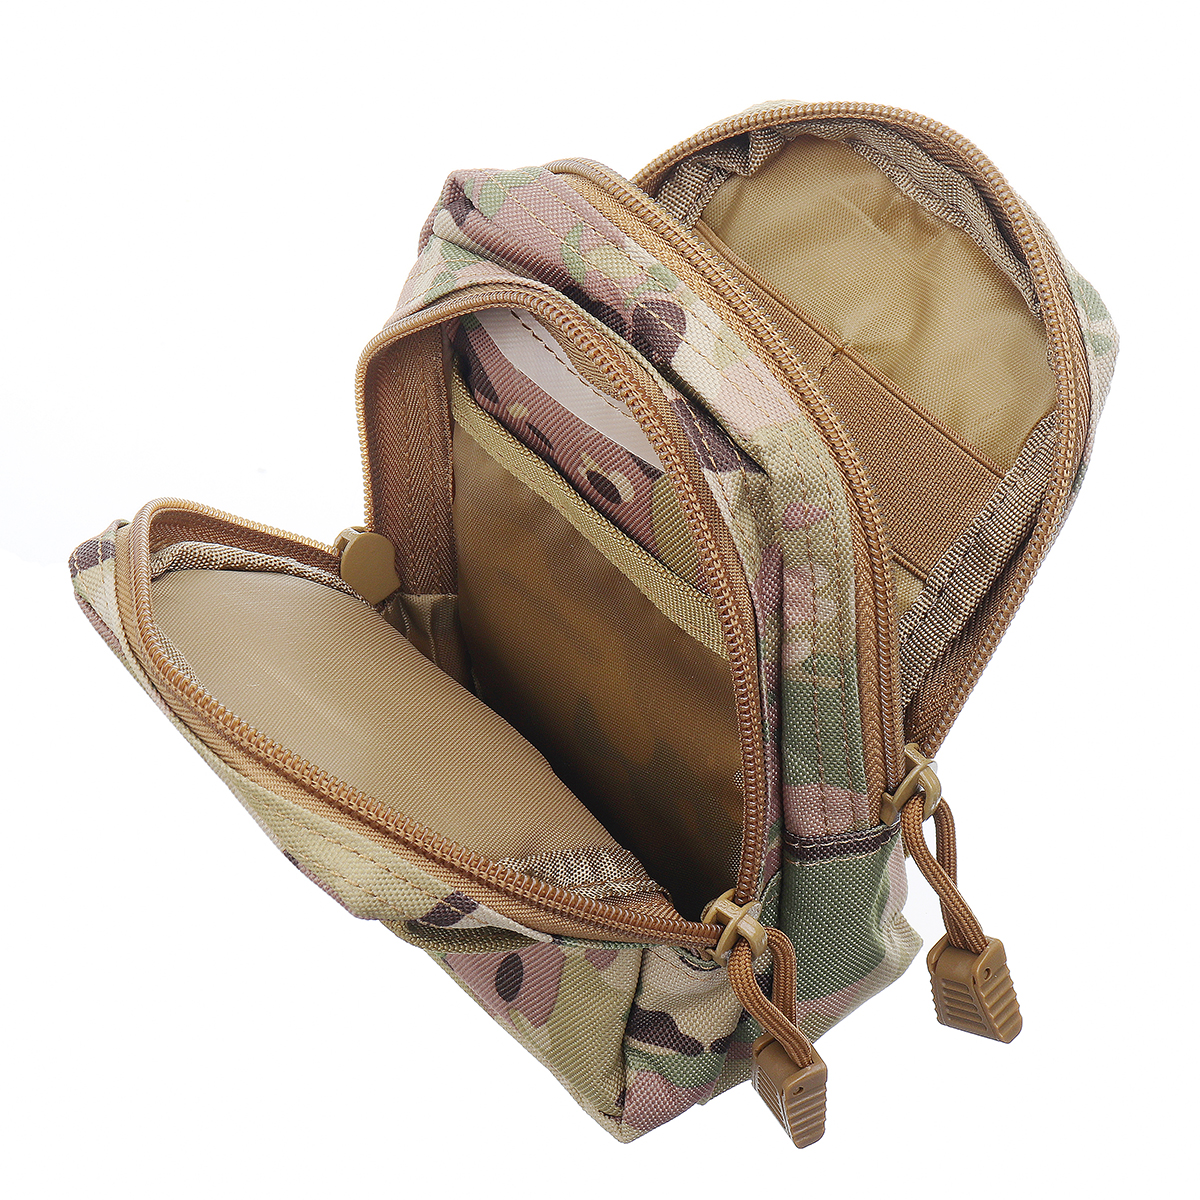 6 Inch Tactical Molle Pouch Waist Bag Phone Bag For Outdoor Sports Hiking Climbing